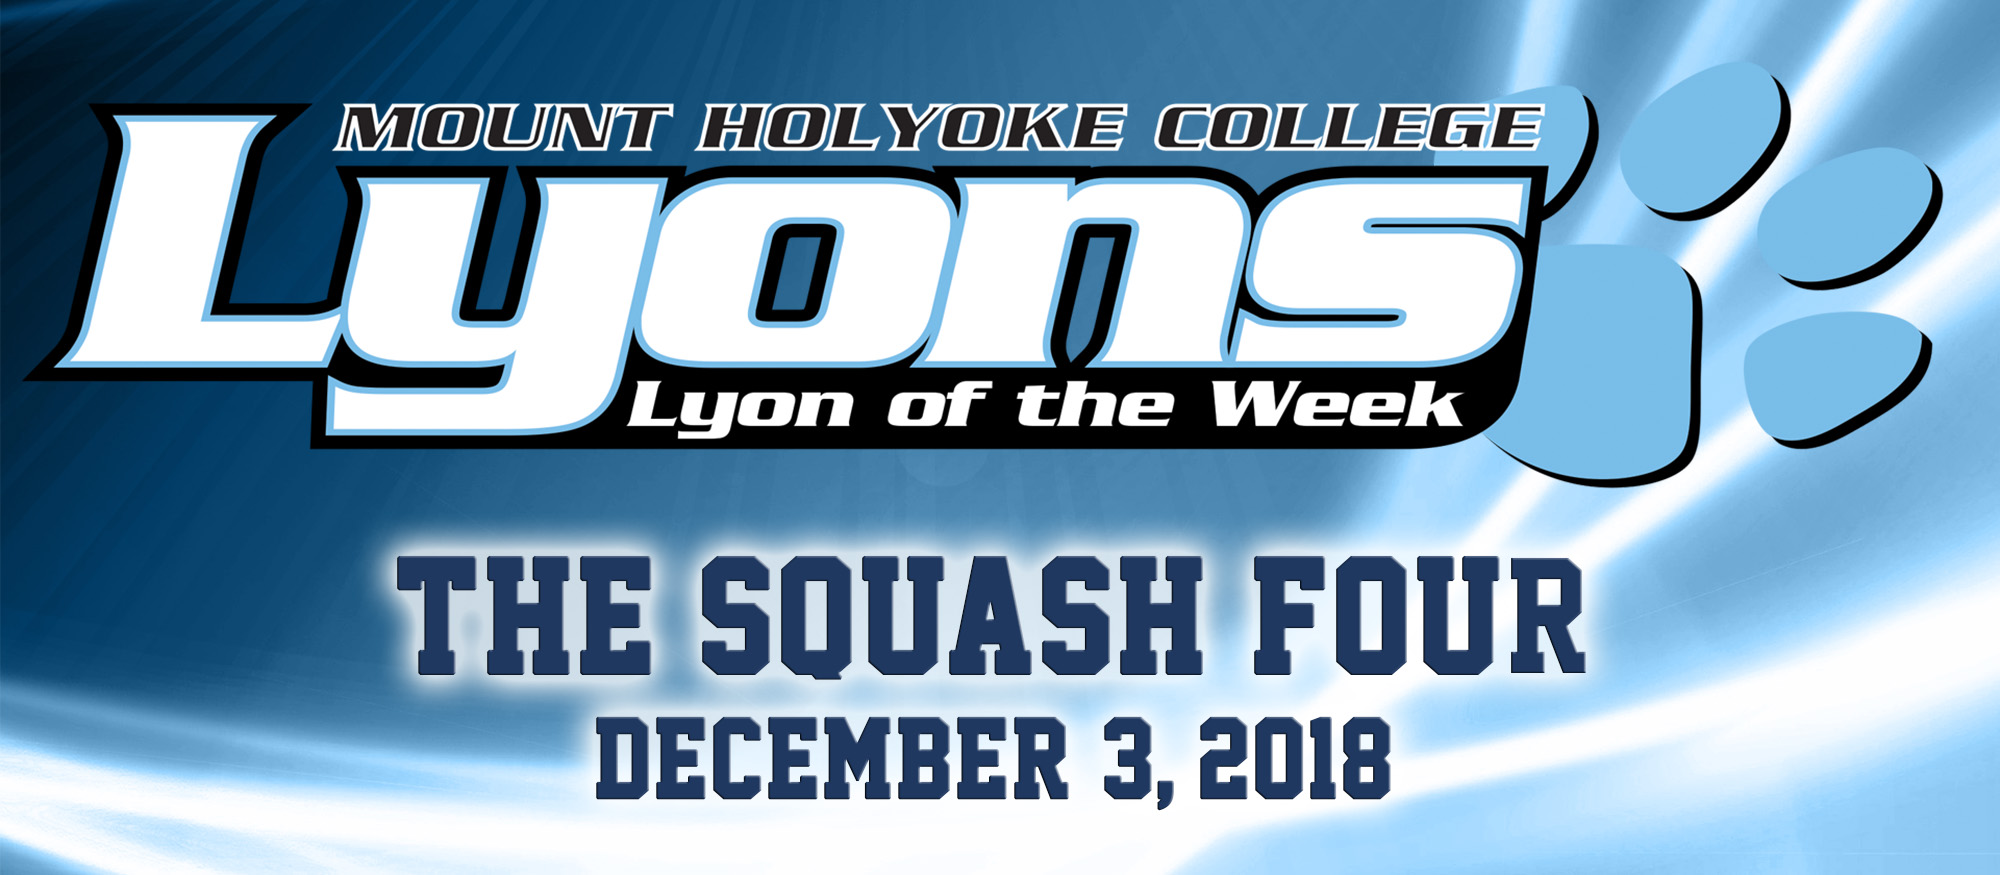 Lyon of the Week graphic for December 3, 2018 honoring Squash players Ragini Ghose, Nadindhi Udangawa, Mihiliya Kalahe Arachchige and Maeve Watts-Roy.